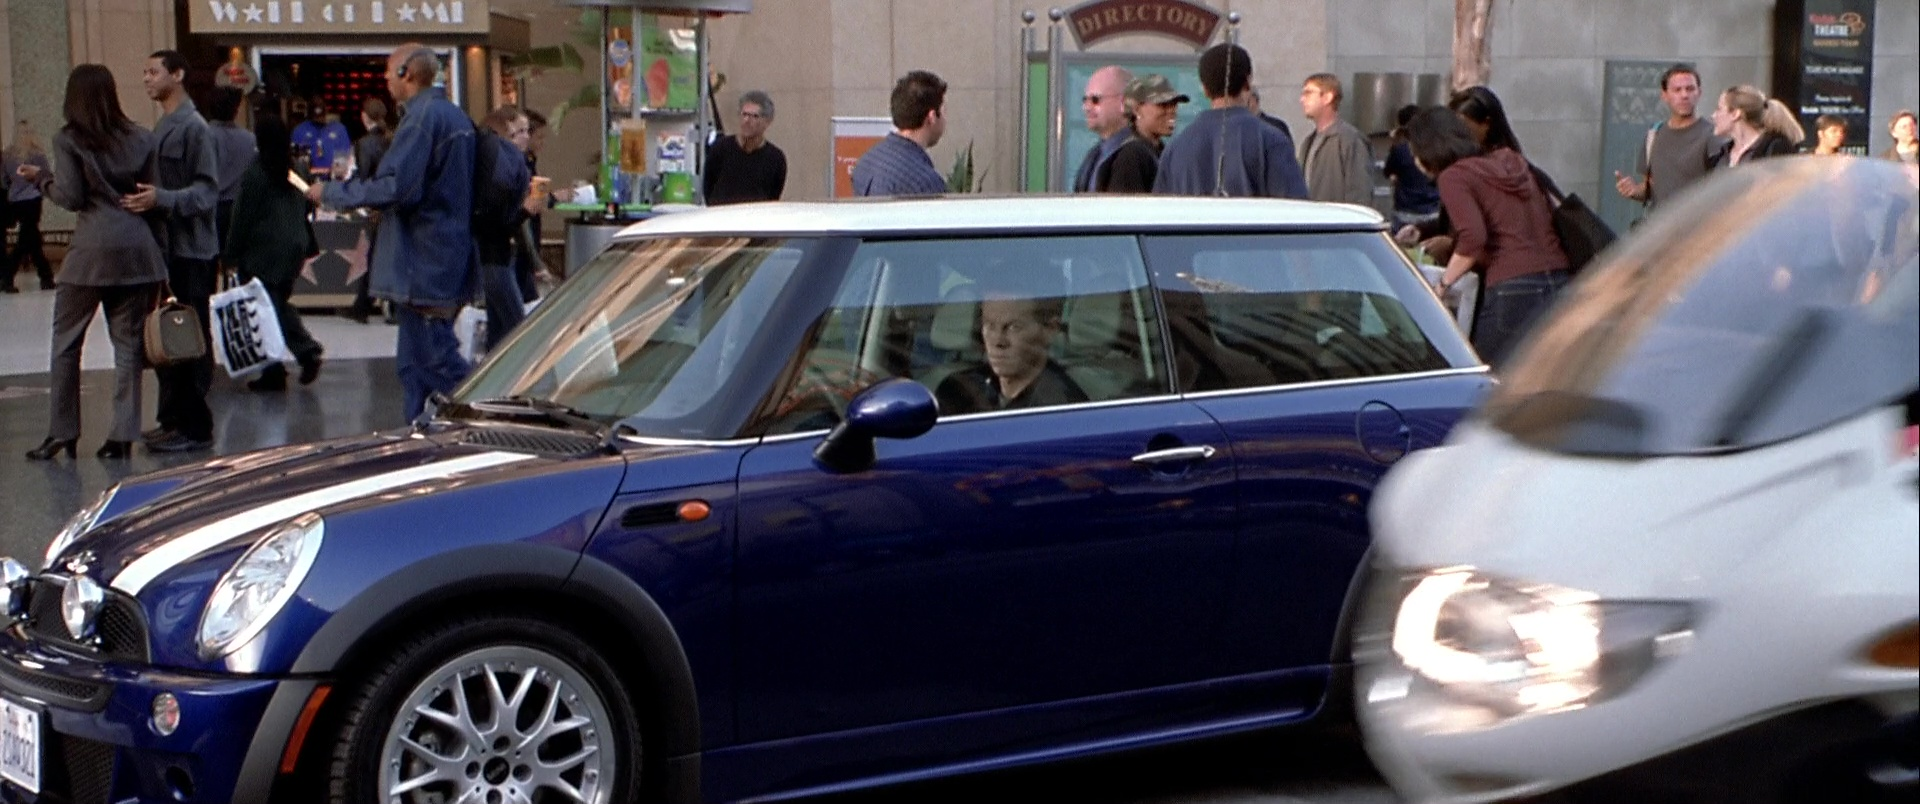 Mini Cooper S Blue Car Used By Mark Wahlberg In The Italian Job